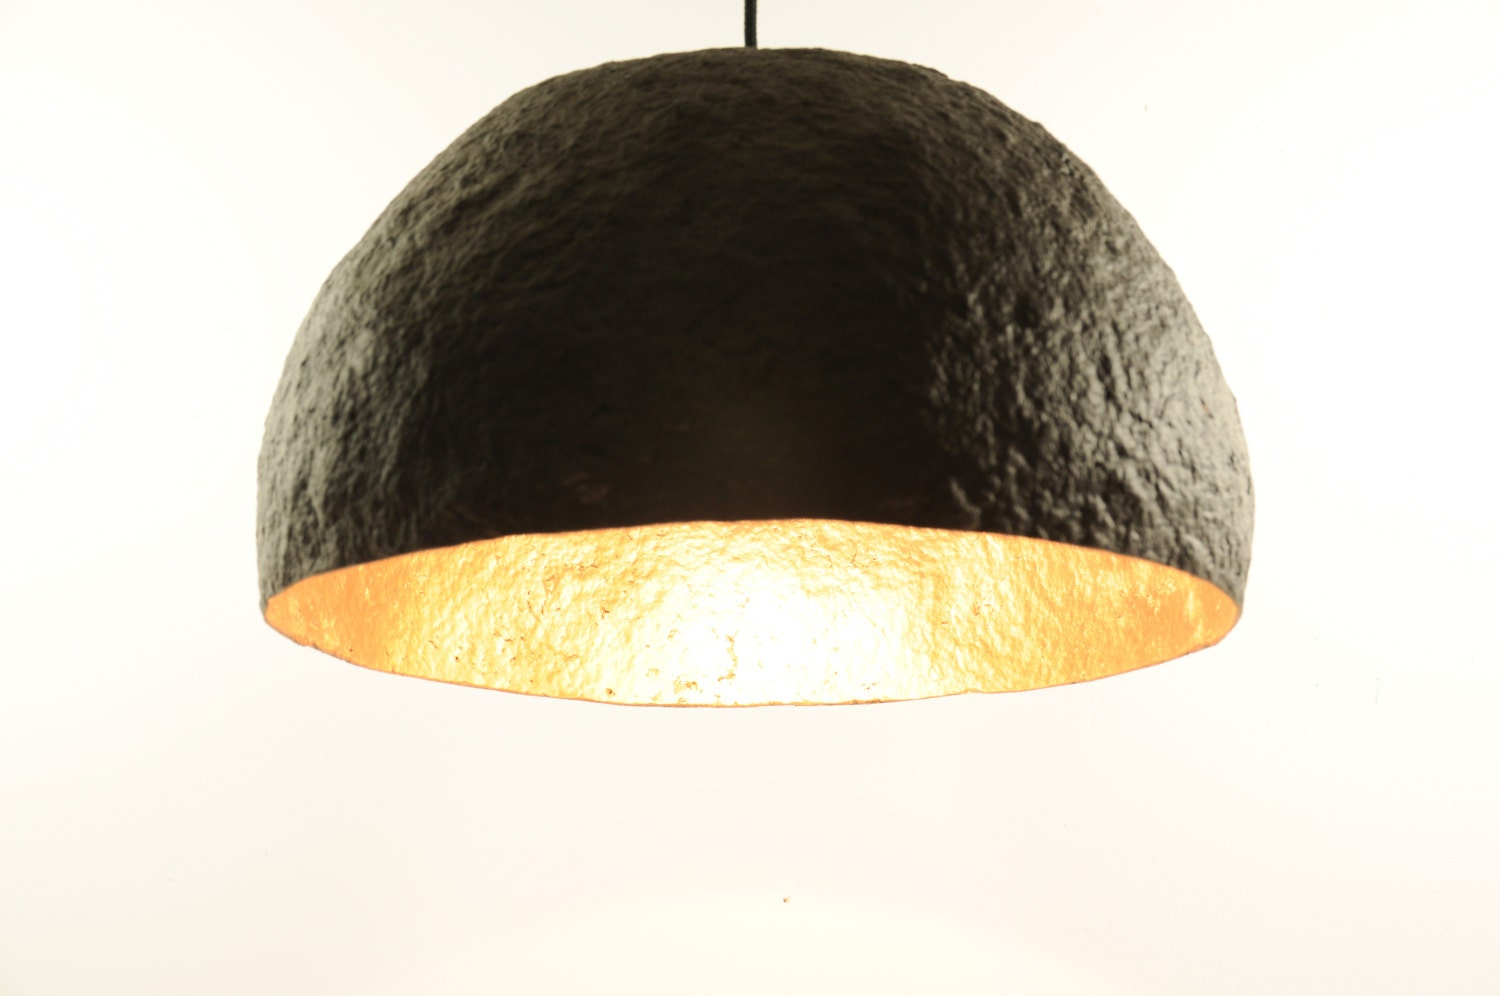 New 2016 hanging paper mache lamp black and by for How to make paper mache lamps